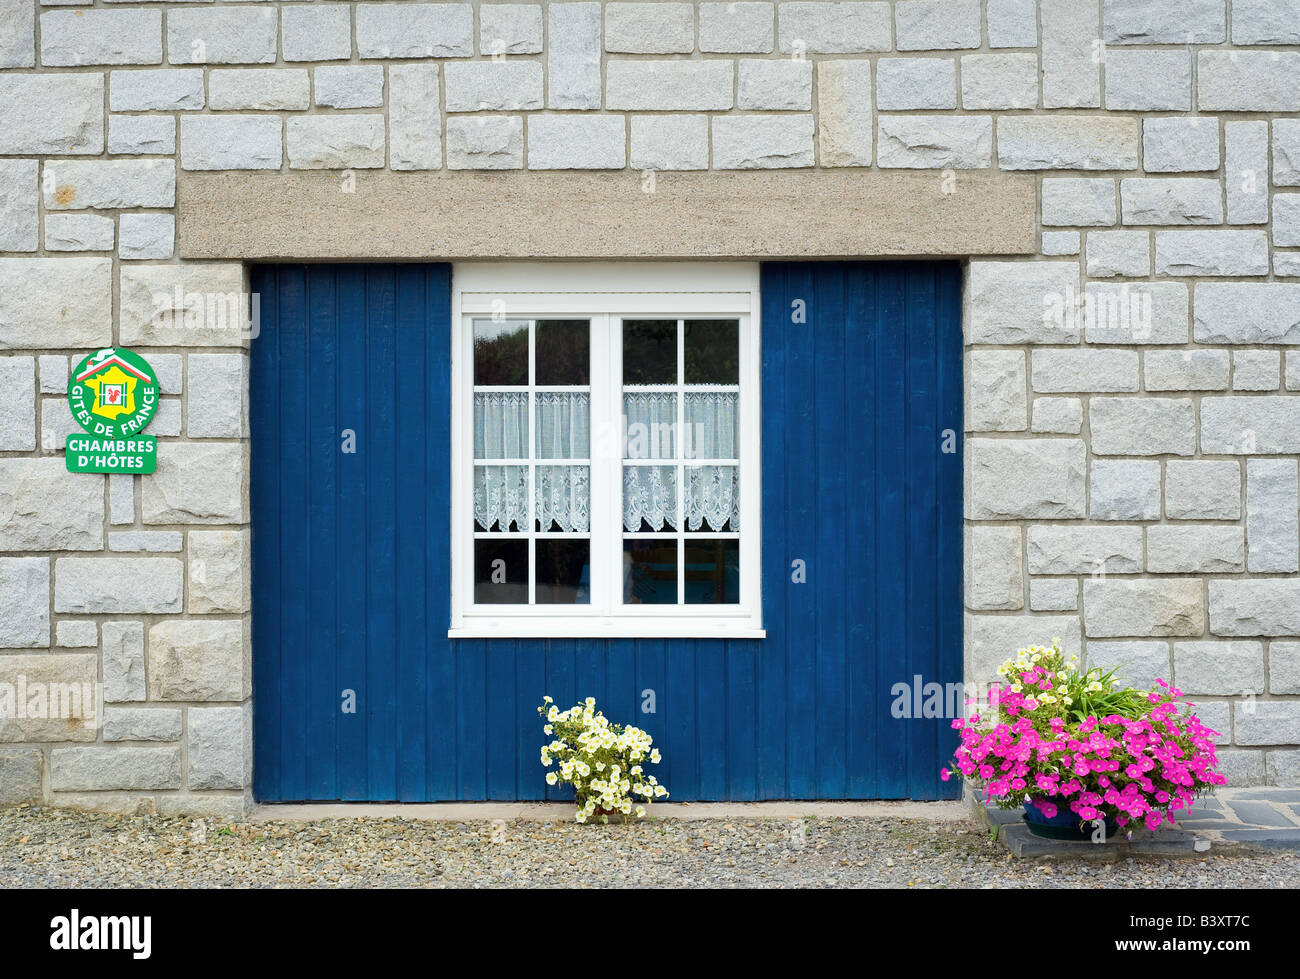 Chambres Sign Stock Photos Chambres Sign Stock Images Alamy